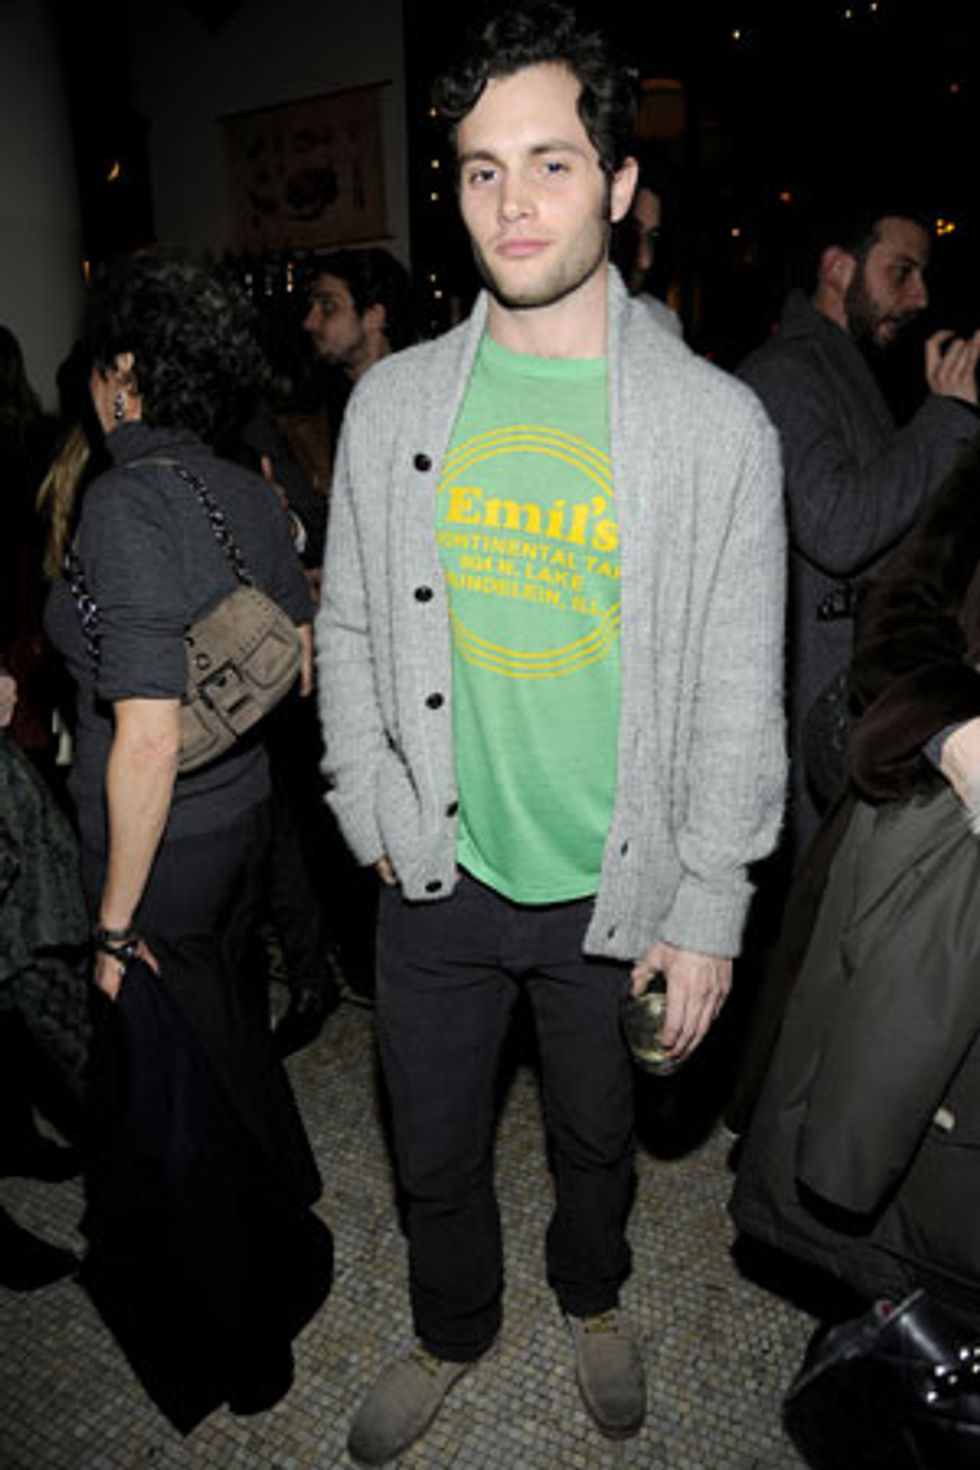 """Penn Badgley on His """"Bottom of the Bracket"""" Look and What's In Store For the Future"""